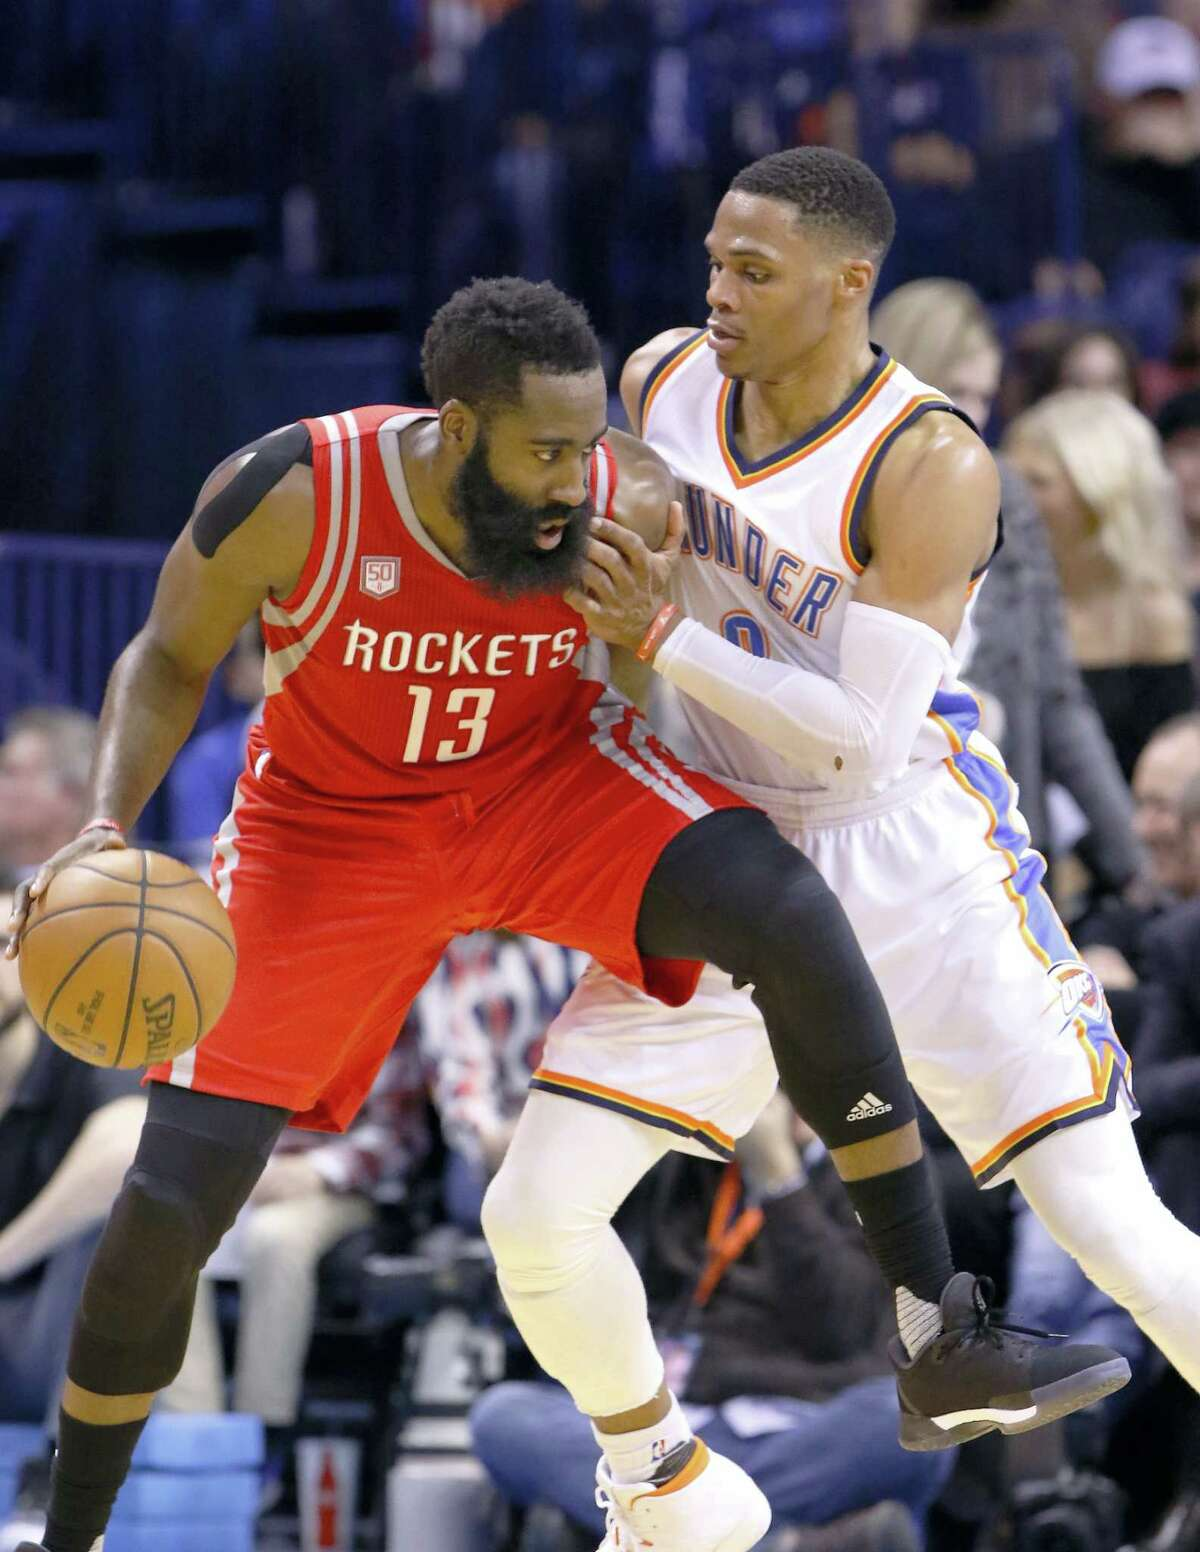 MVP candidates James Harden, left, and Russell Westbrook will square off against each other in the playoffs.